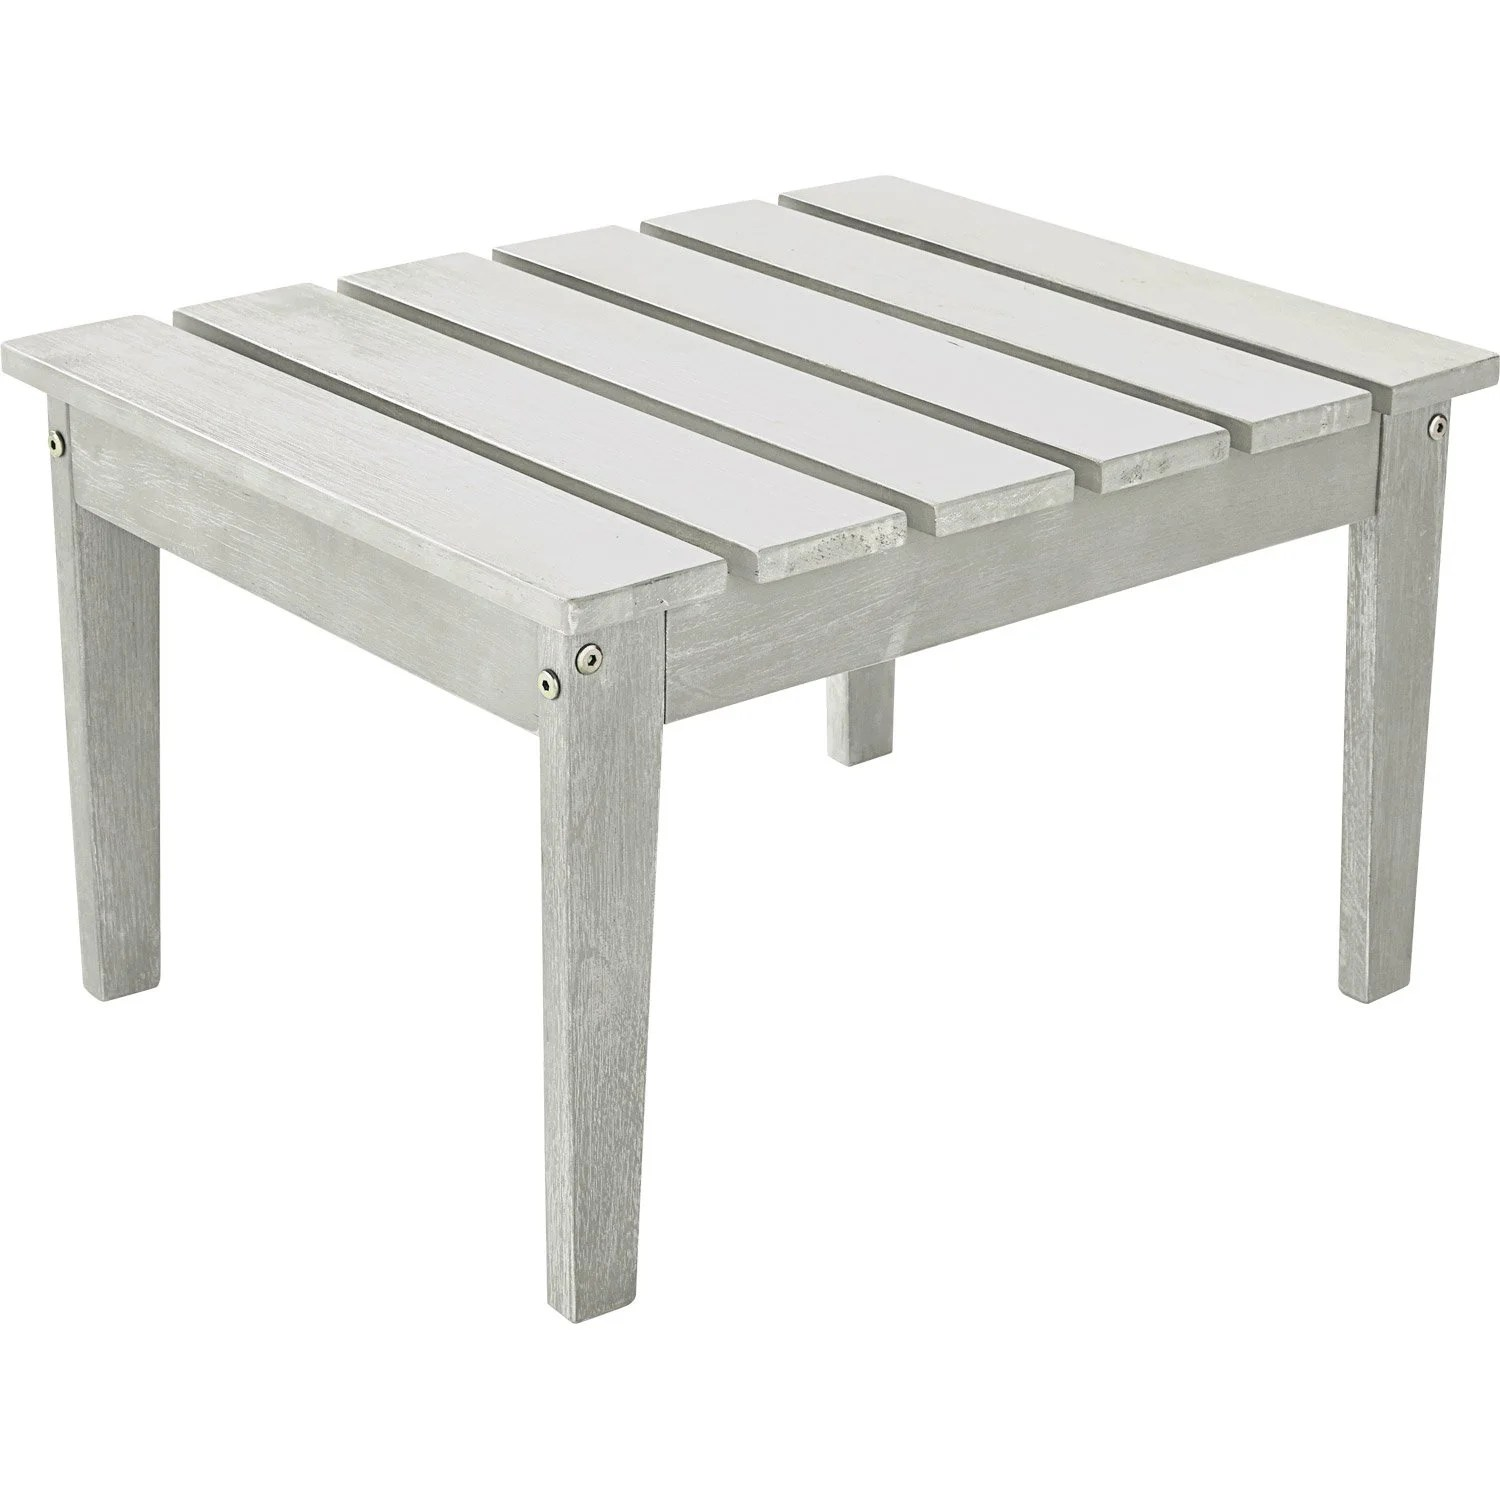 Table Exterieur 2 Personnes Table De Jardin Basse Naterial Portofino Rectangulaire